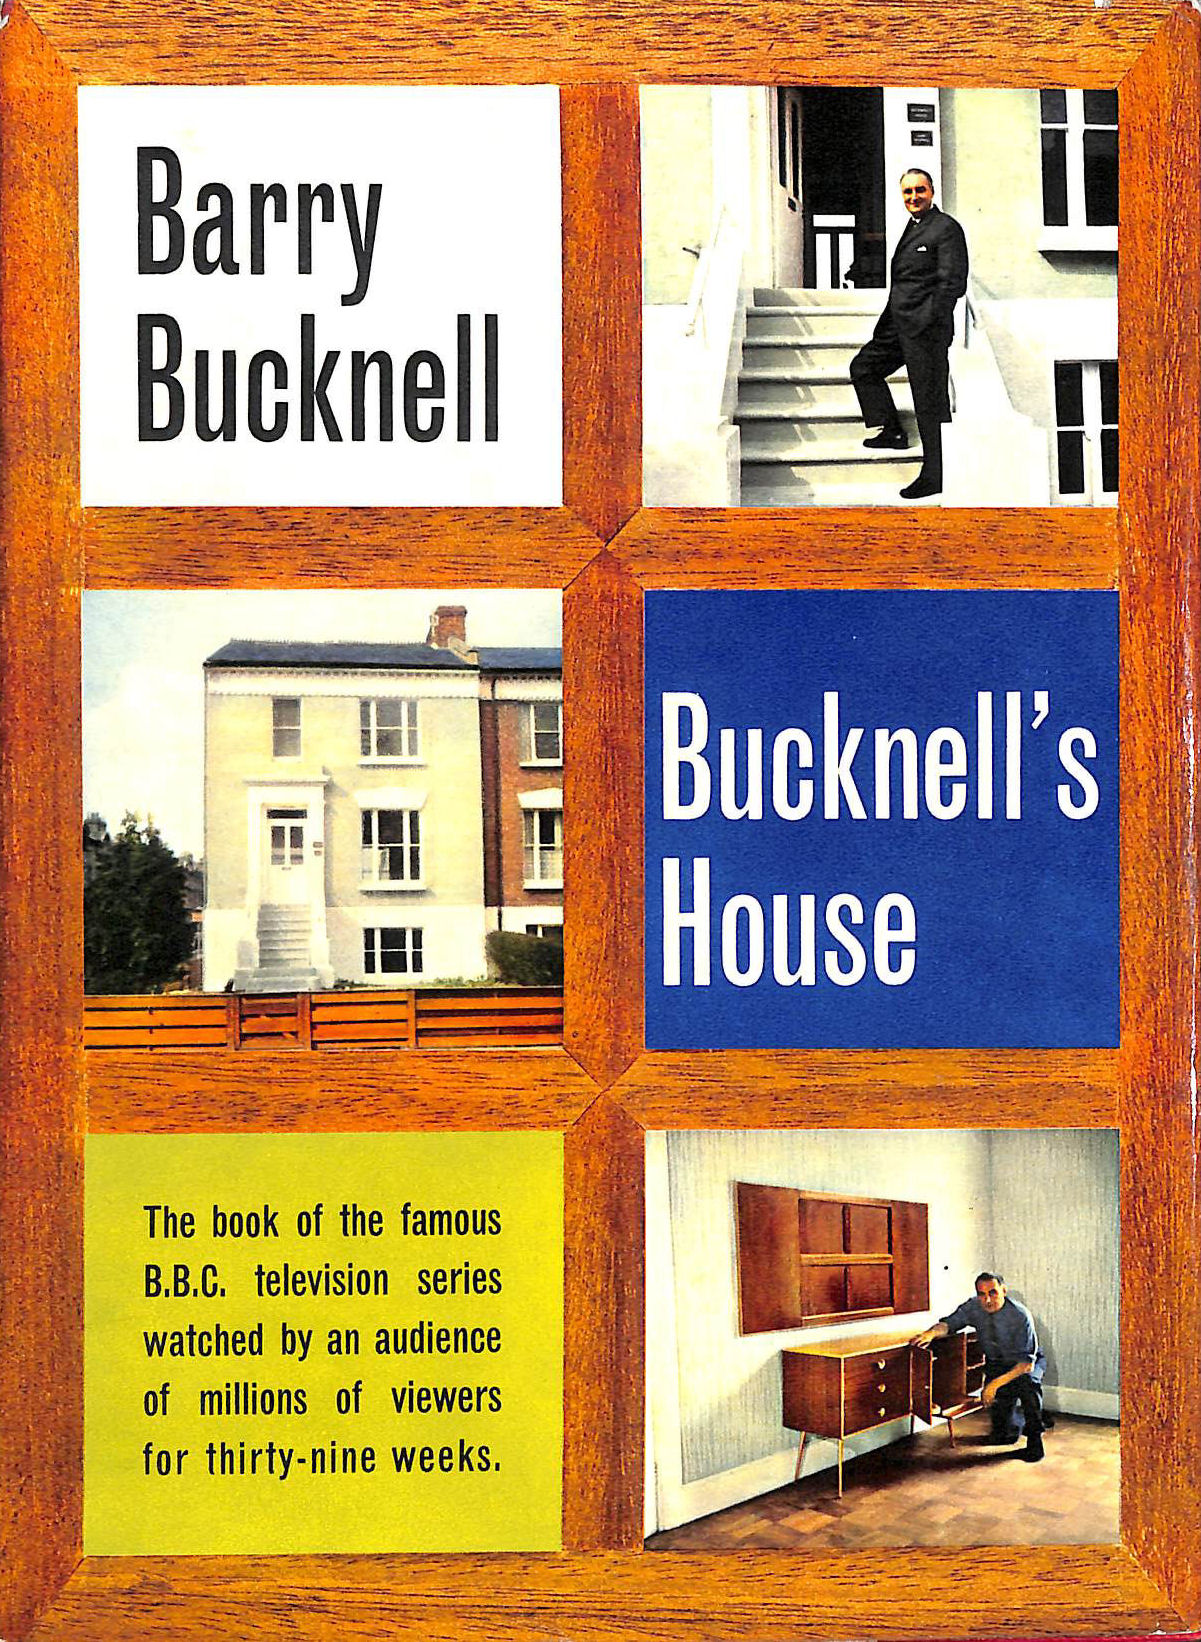 Image for Bucknell's house